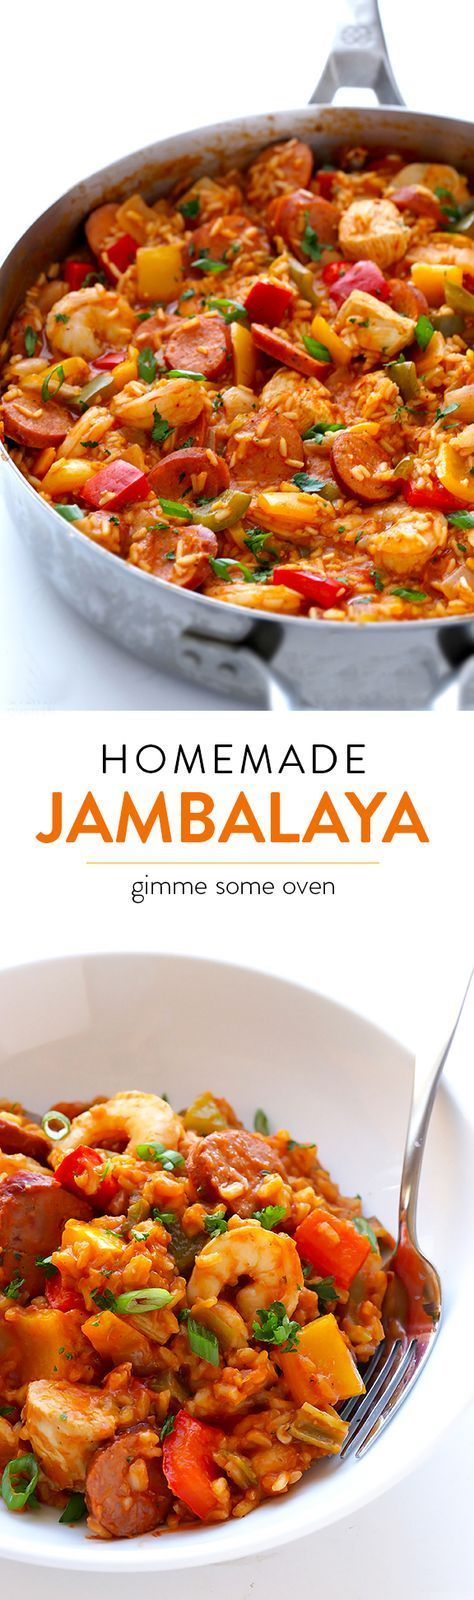 Learn how to make homemade jambalaya with this delicious (and easy!) recipe   gimmesomeoven.com